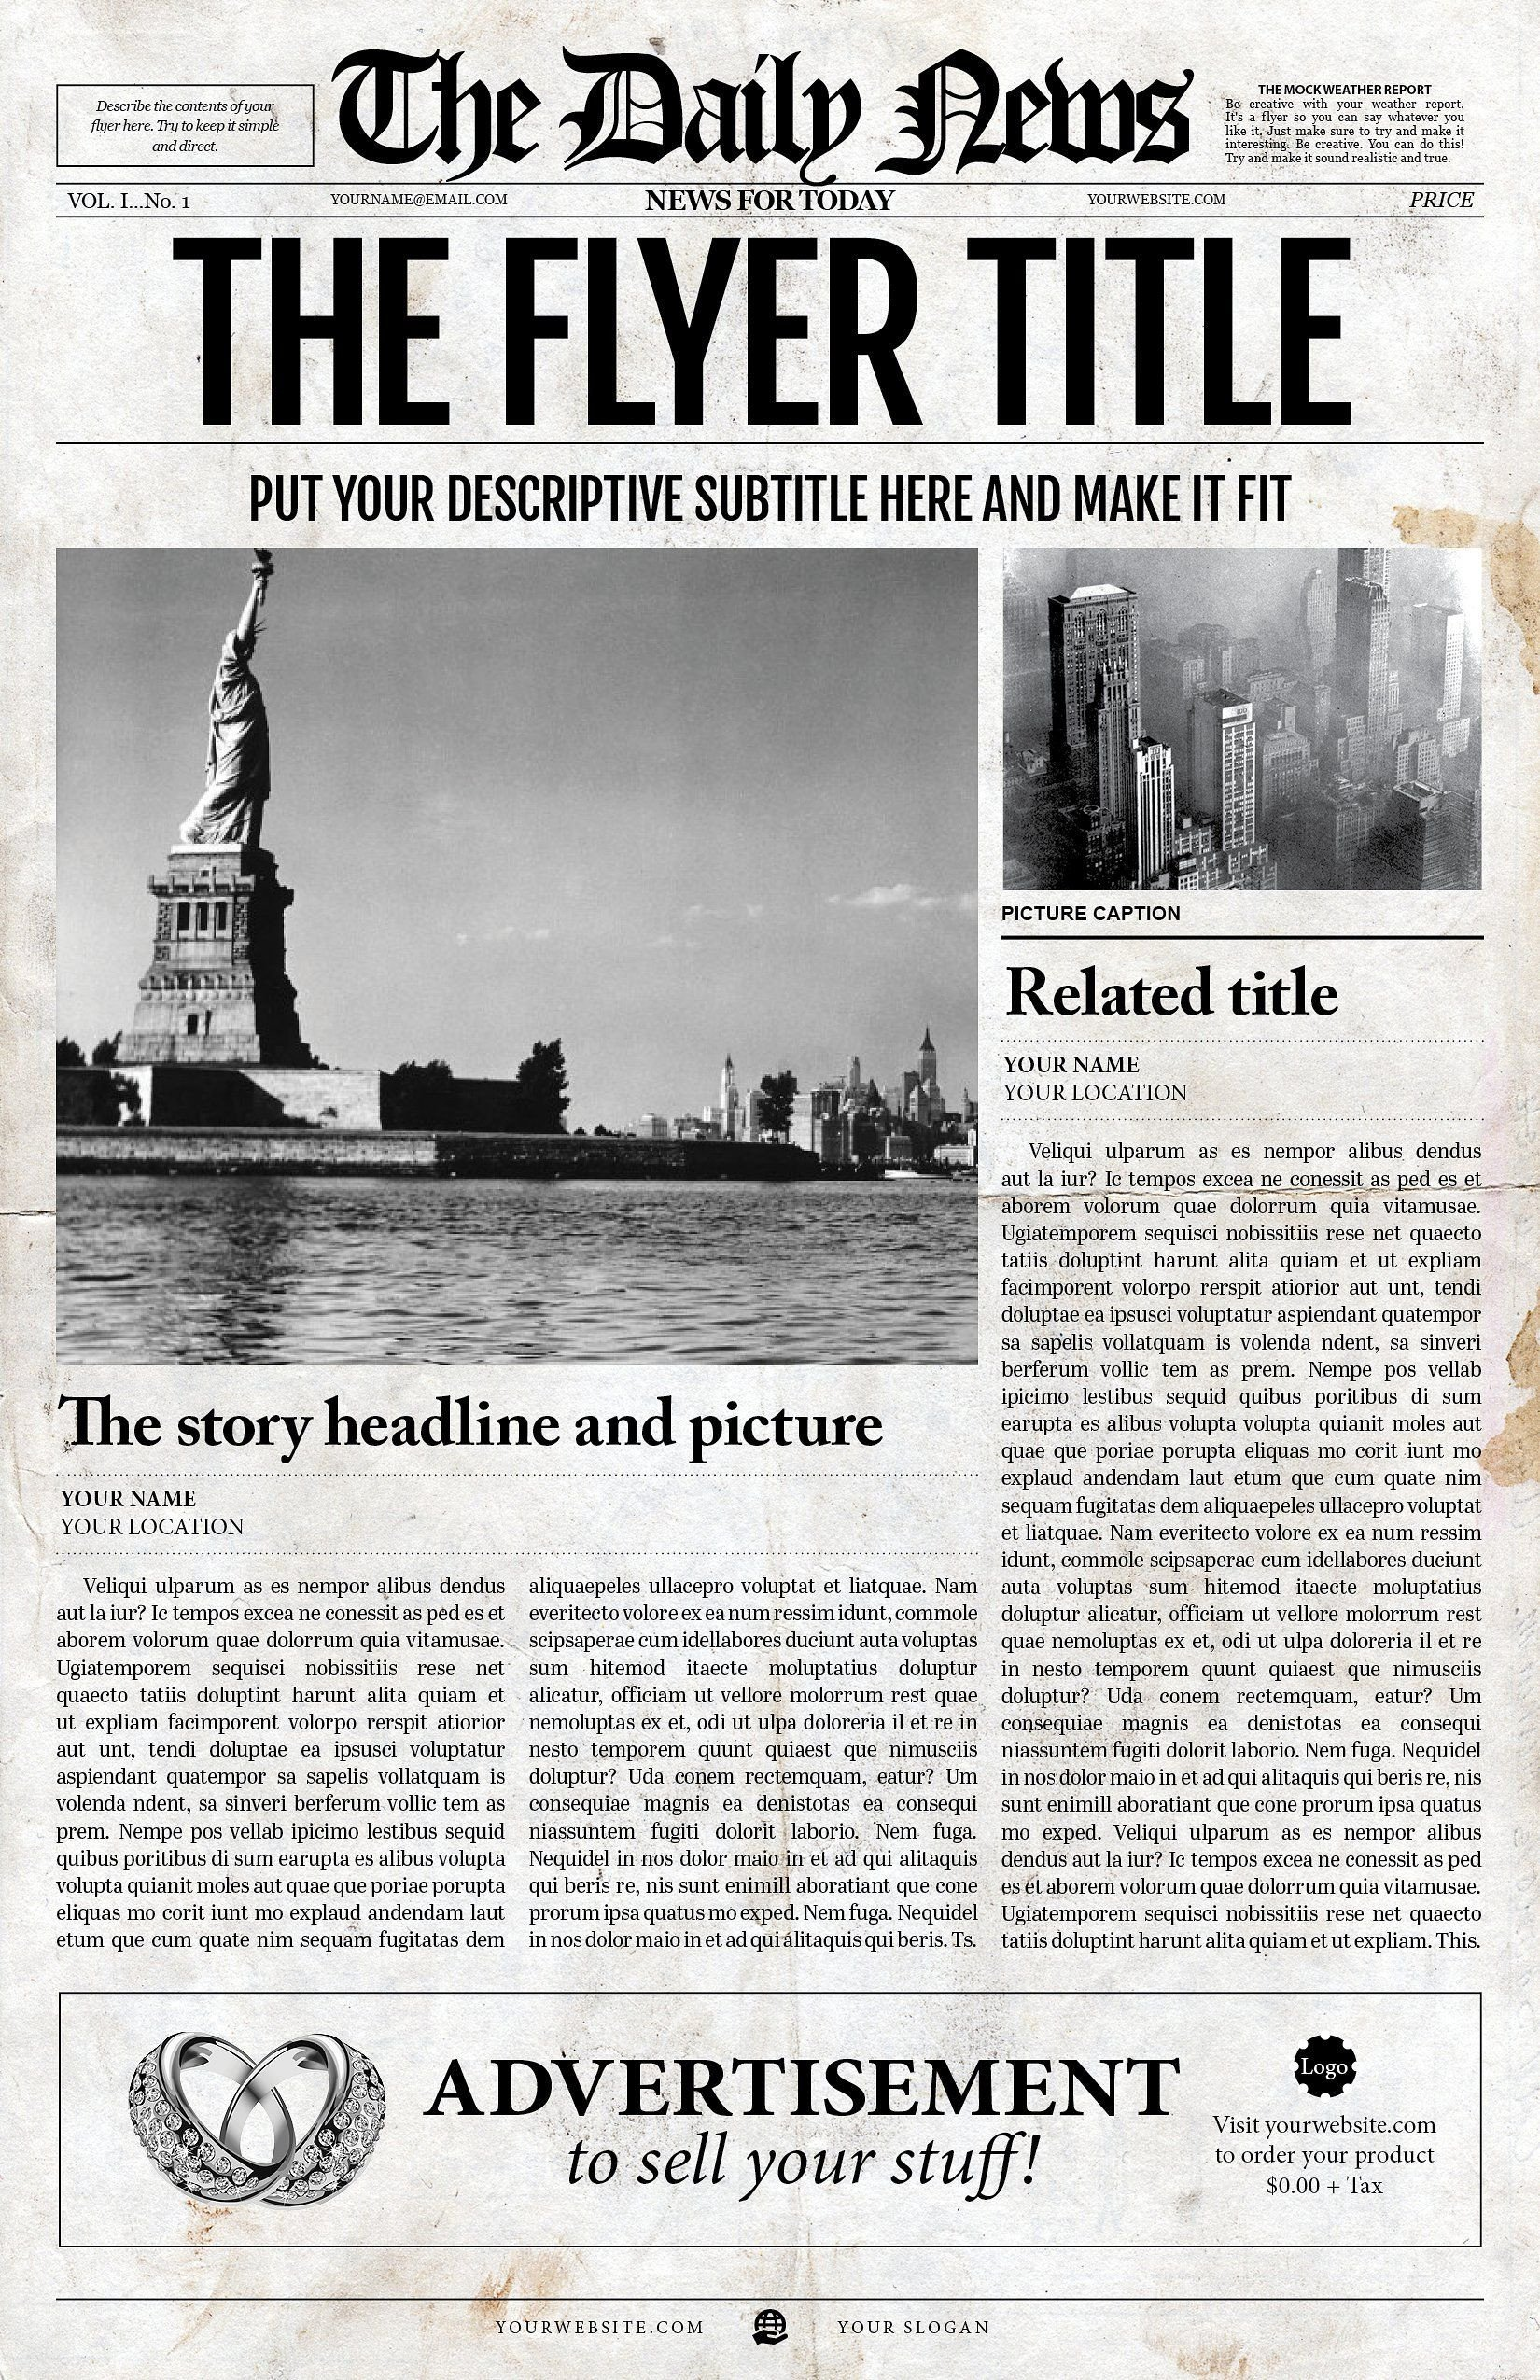 New York Times Newspaper Template Google Docs 2x1 Page Newspaper Template Adobe Indesign 8 5x11 & 11x17